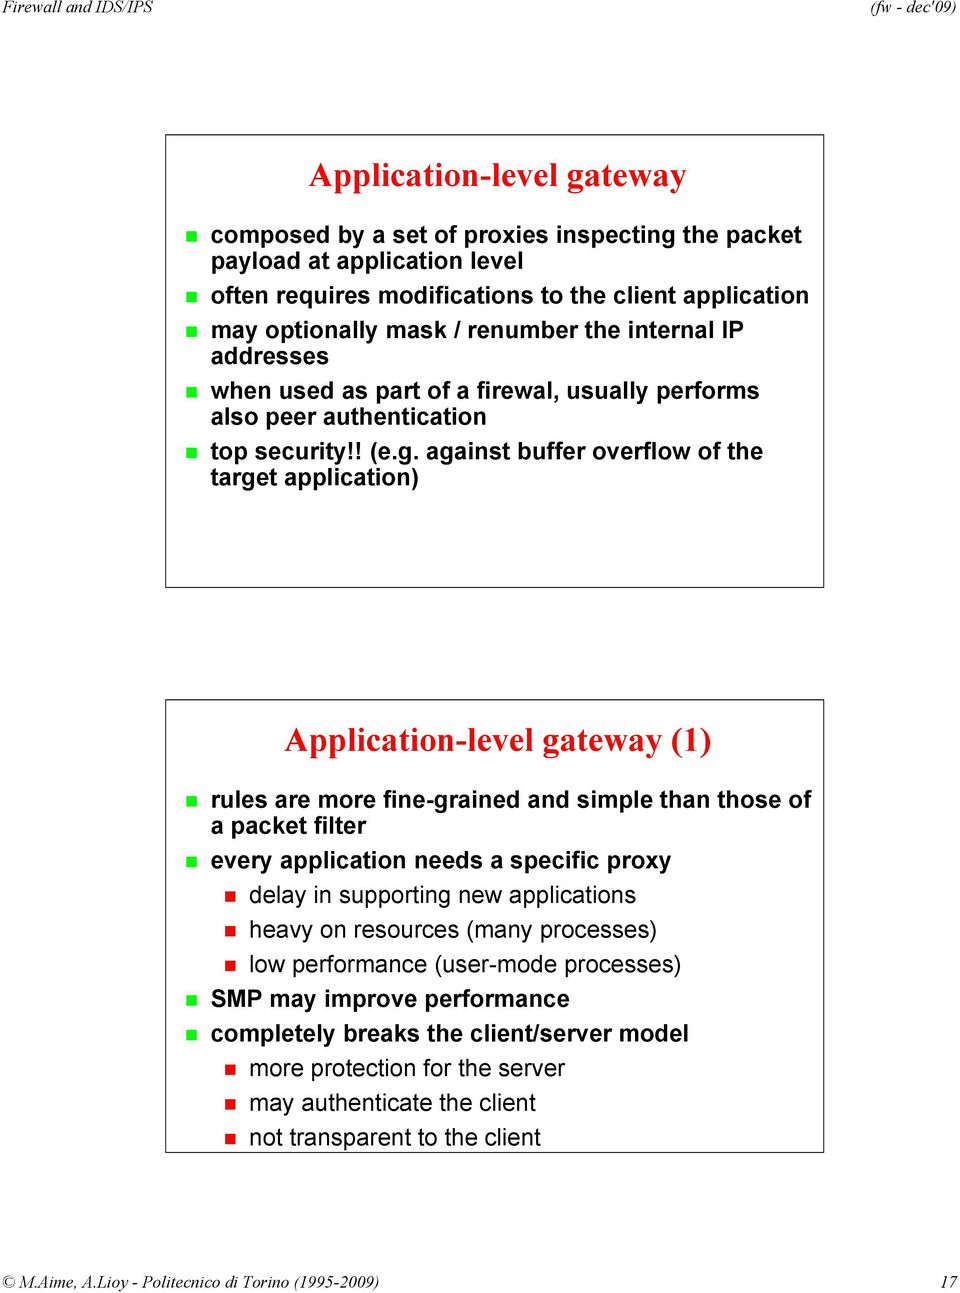 against buffer overflow of the target application) Application-level gateway (1) rules are more fine-grained and simple than those of a packet filter every application needs a specific proxy delay in